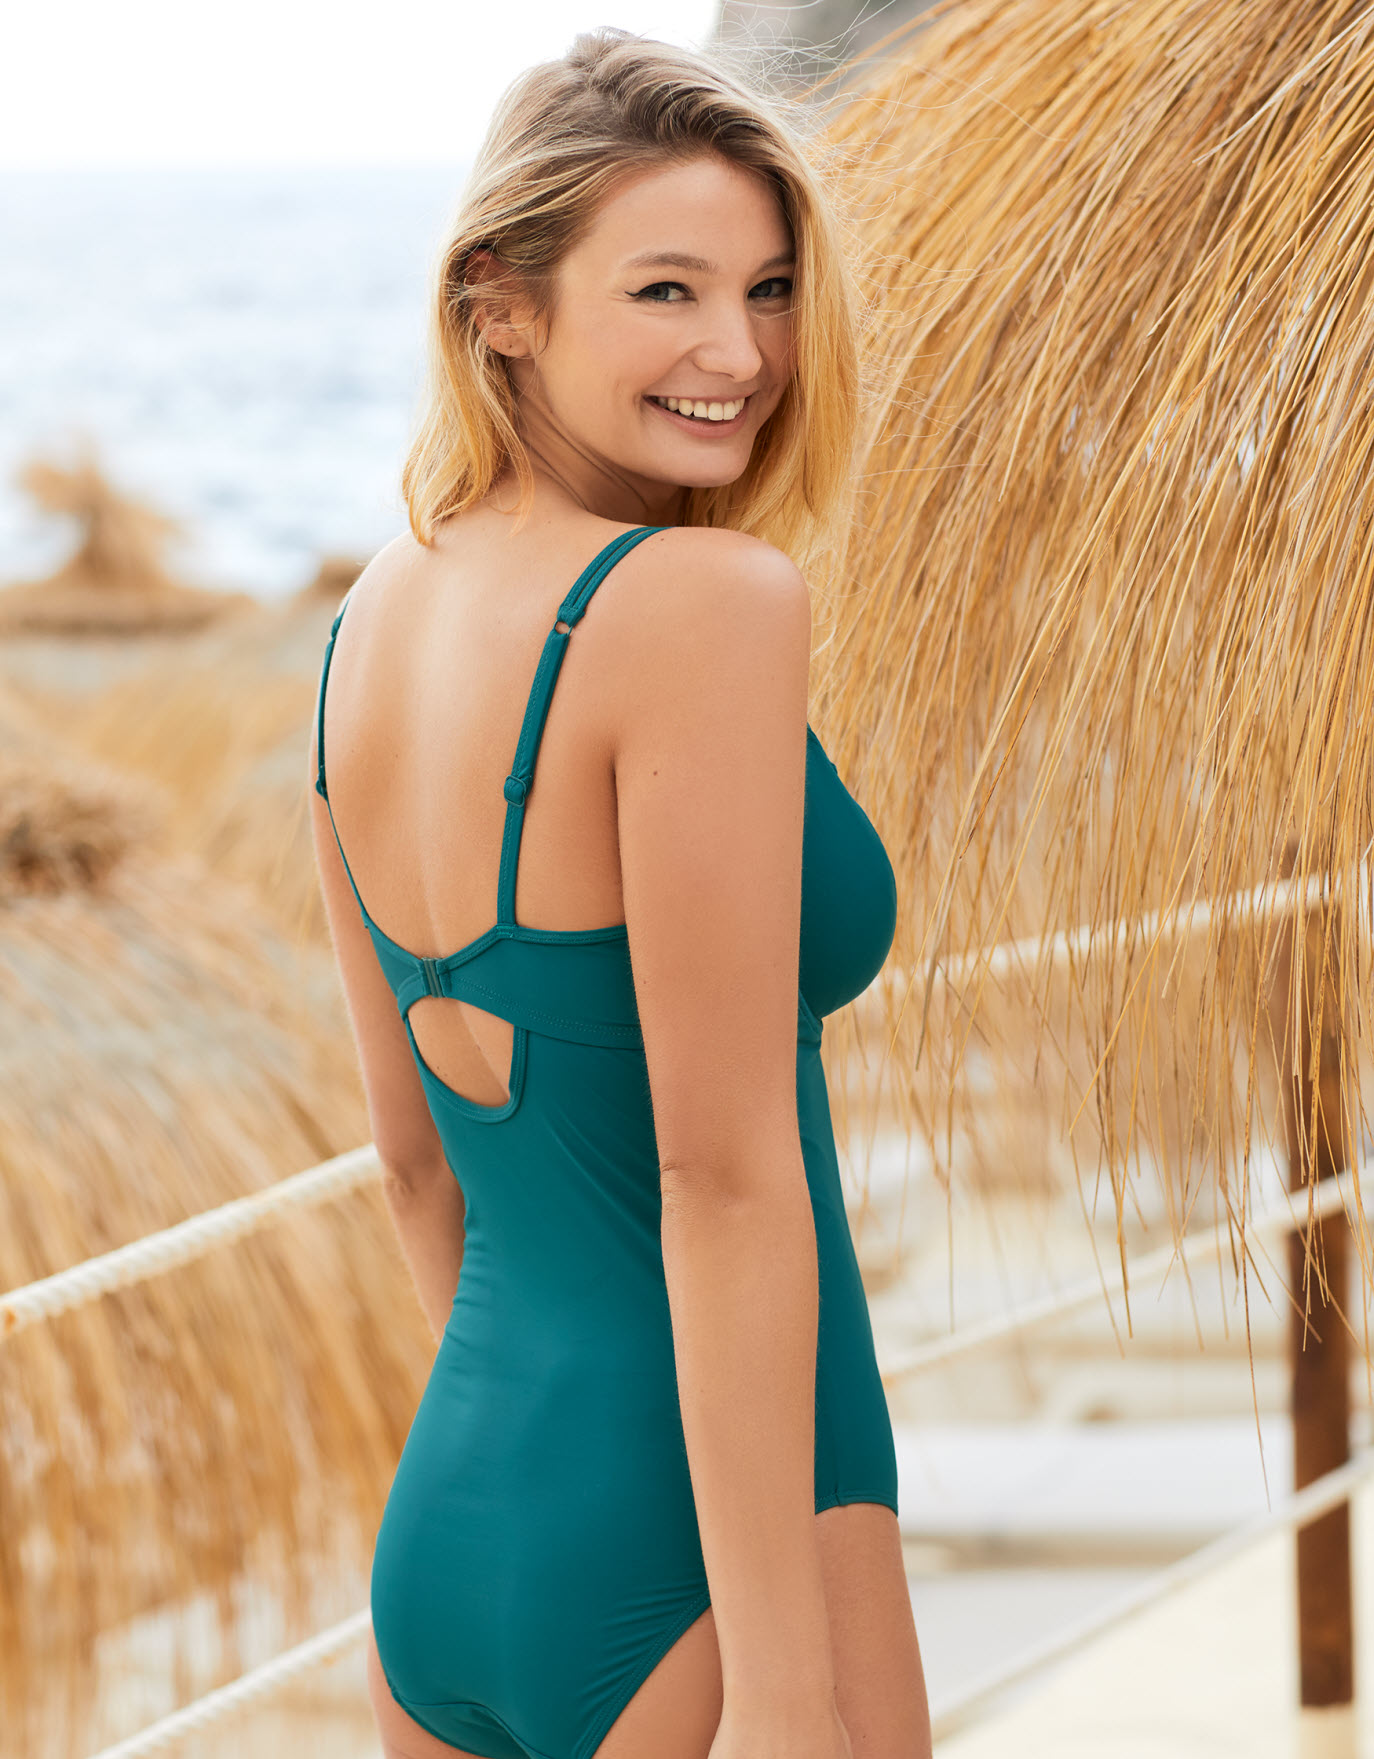 Marseille Scallop Swimsuit by